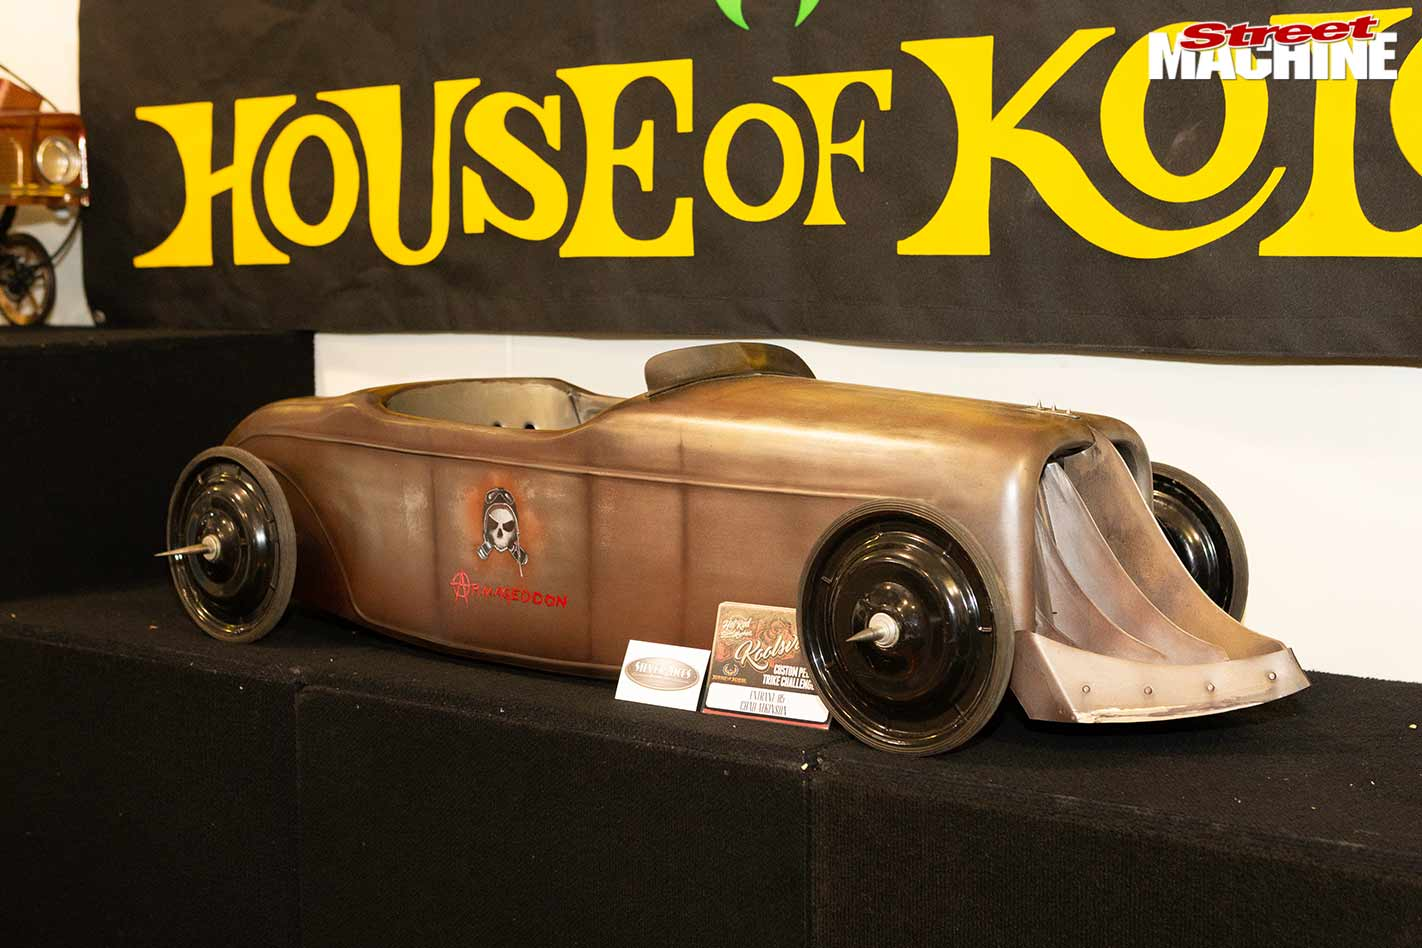 Chad Atkinson from Silver Aces fabricated car